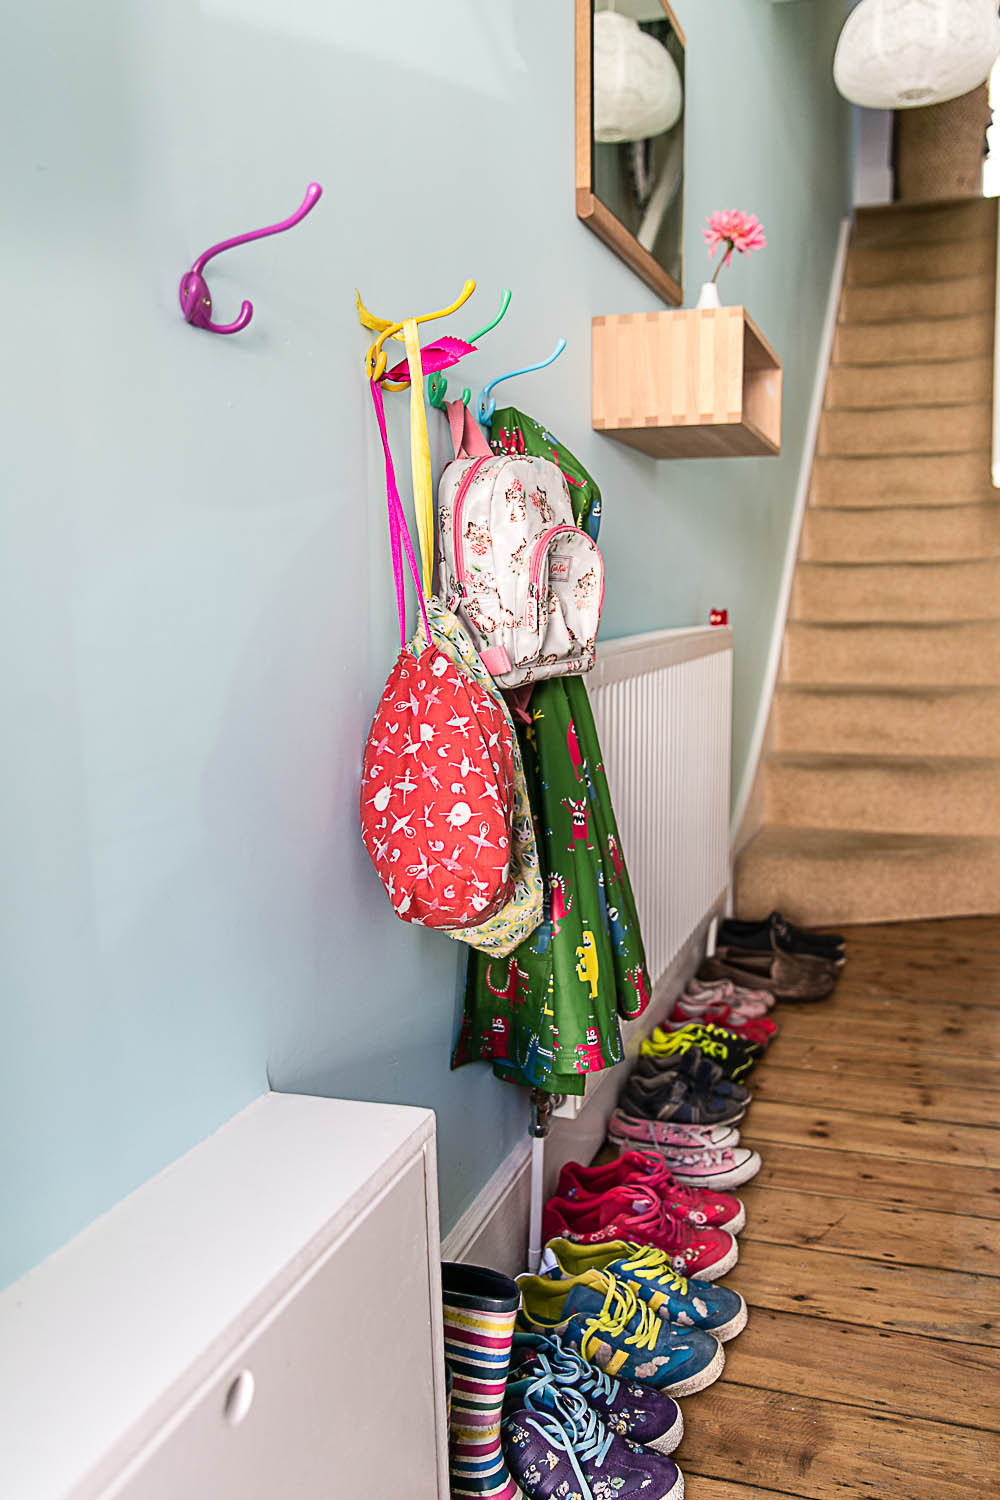 Hallway Makesover with B&Q and Valspar at Housewife Confidential